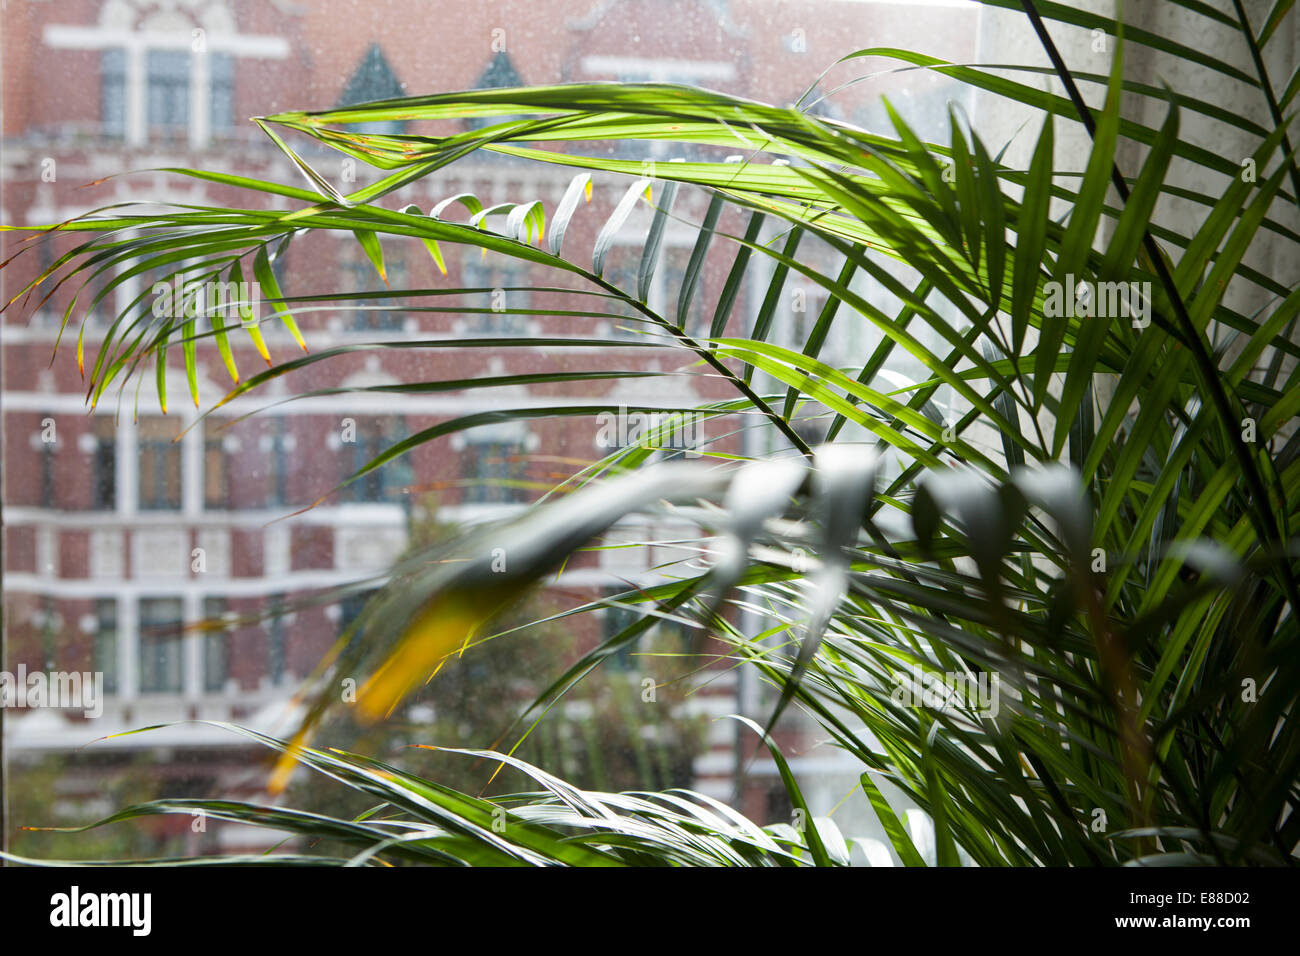 View through a dirty window pane, Lindener marketplace, Hanover, Lower Saxony, Germany, Europe, - Stock Image